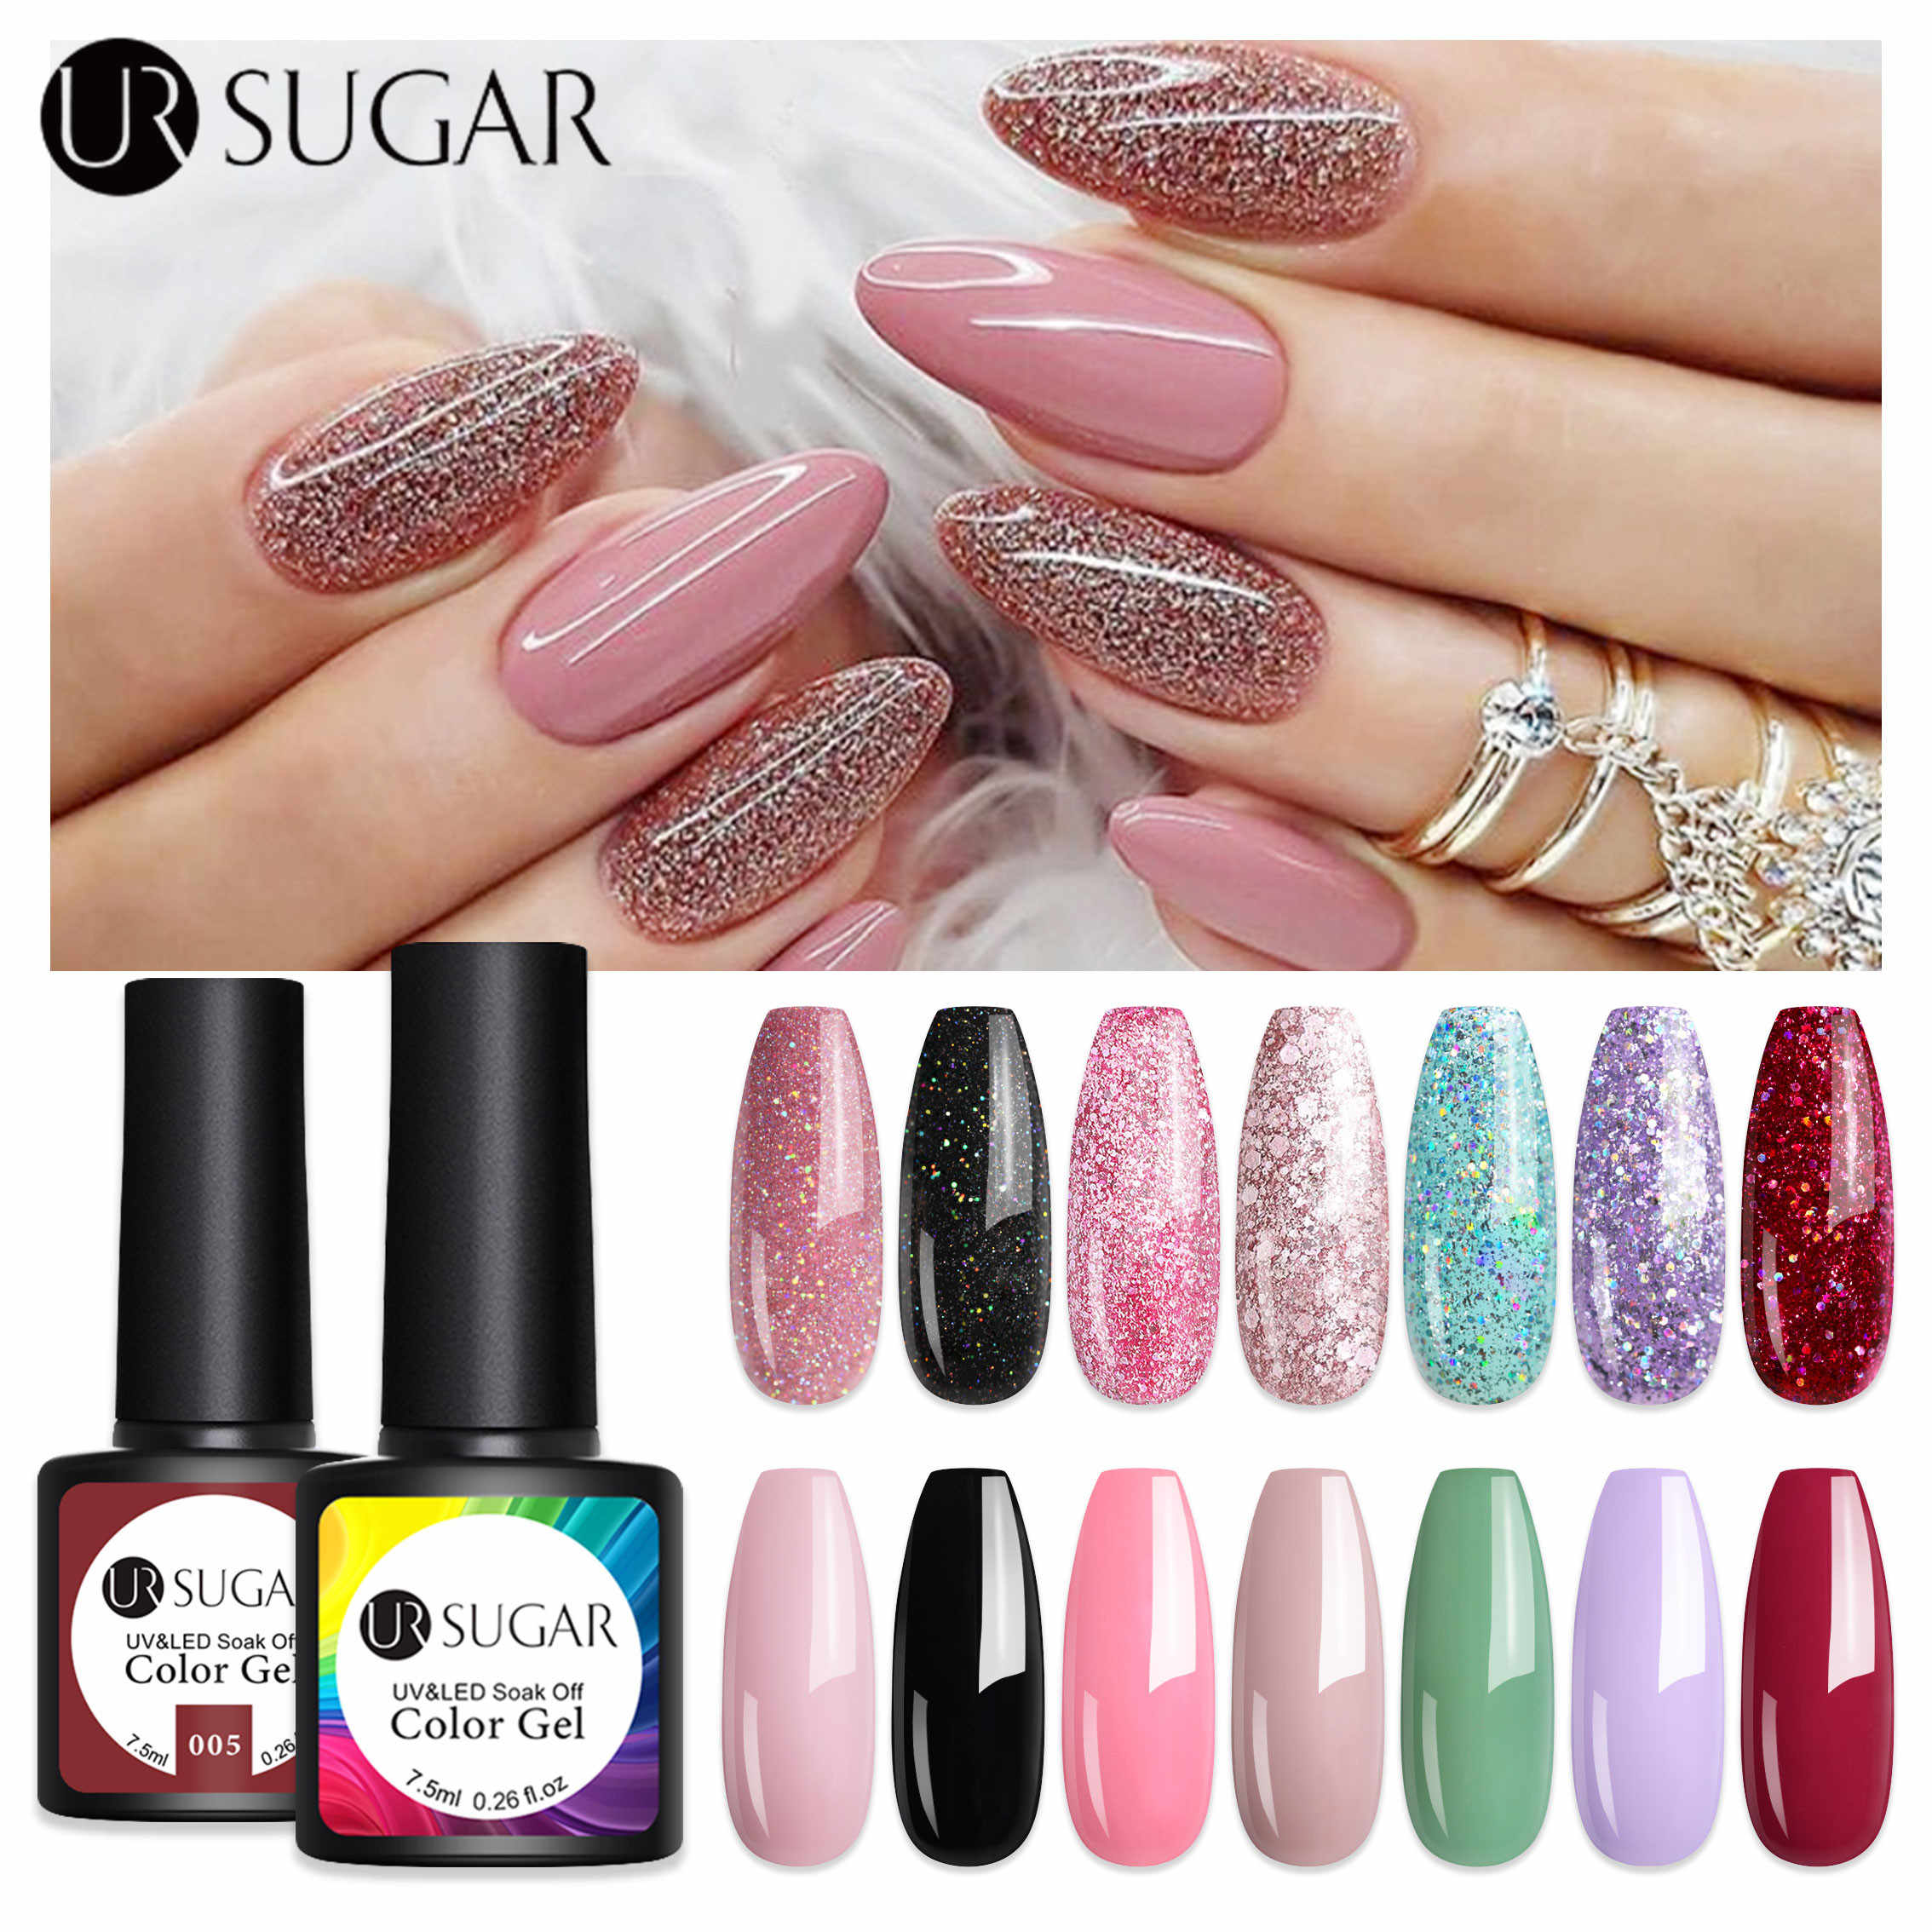 UR GULA 2 Pcs/set Glitter Gel Cat Kuku Rose Emas Ungu Payet Laser Uv Gel Varnish Rendam Off UV LED gel Varnish